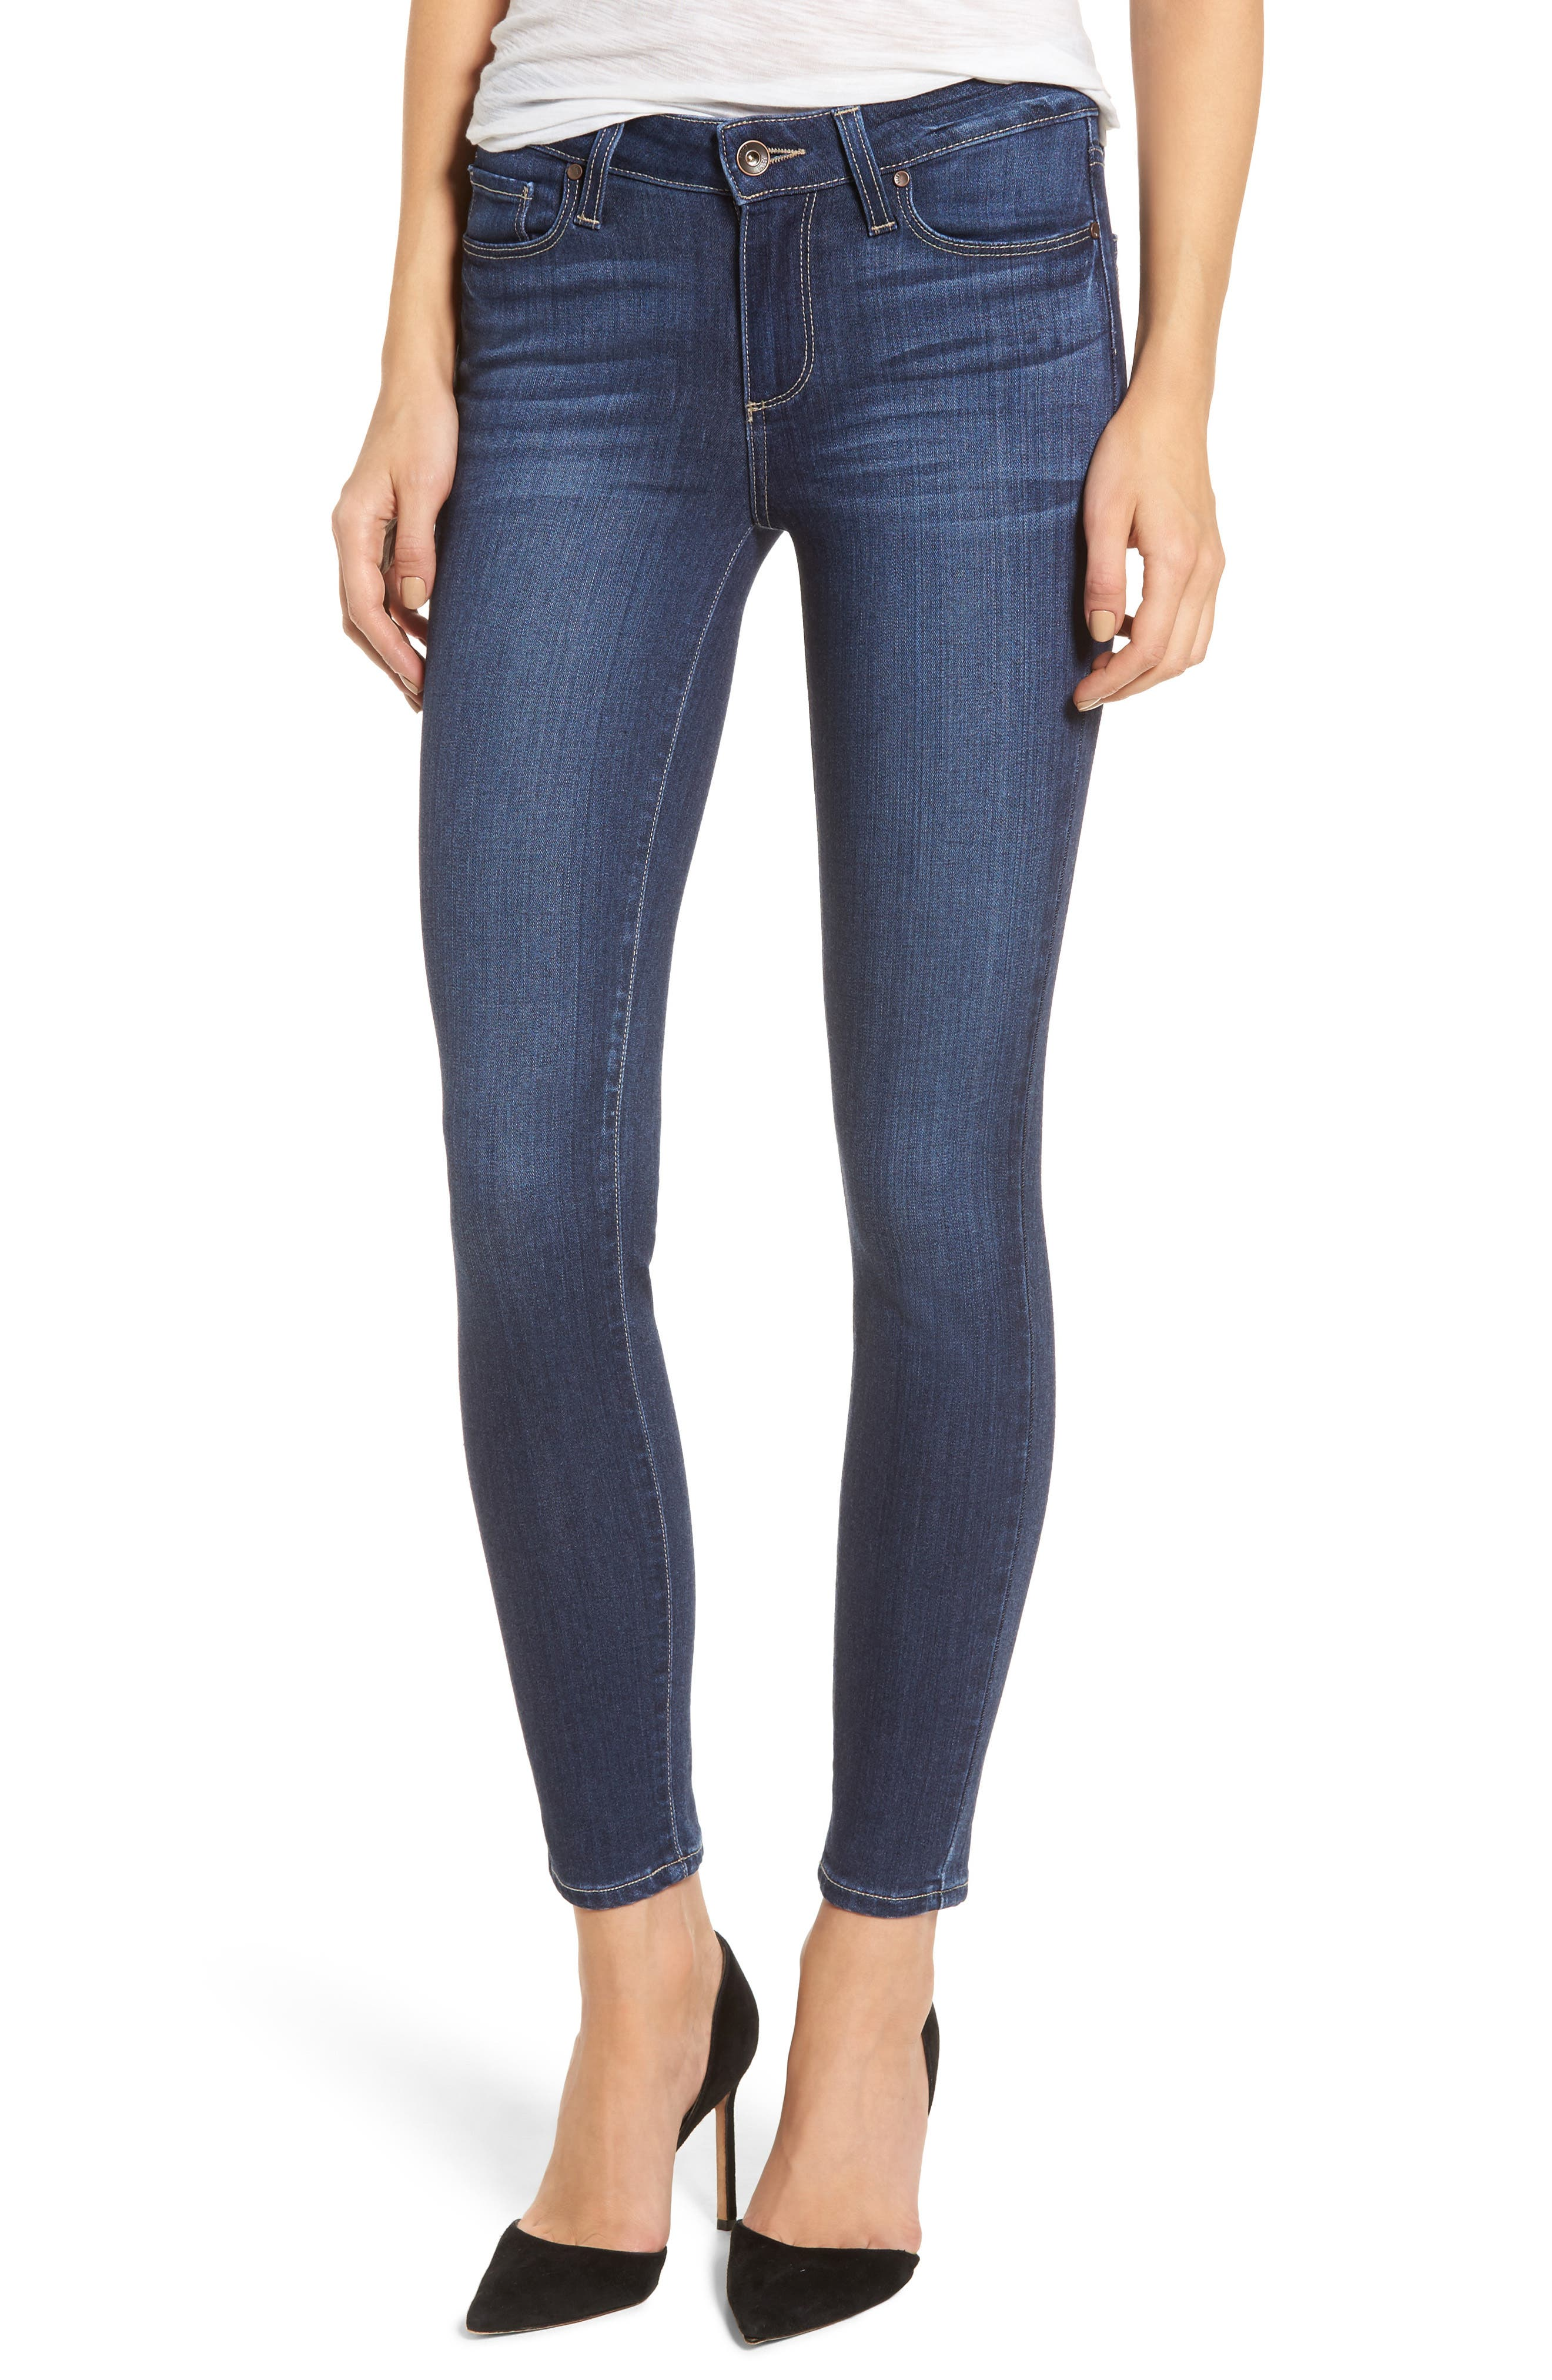 Transcend - Verdugo Ankle Skinny Jeans,                             Main thumbnail 1, color,                             400